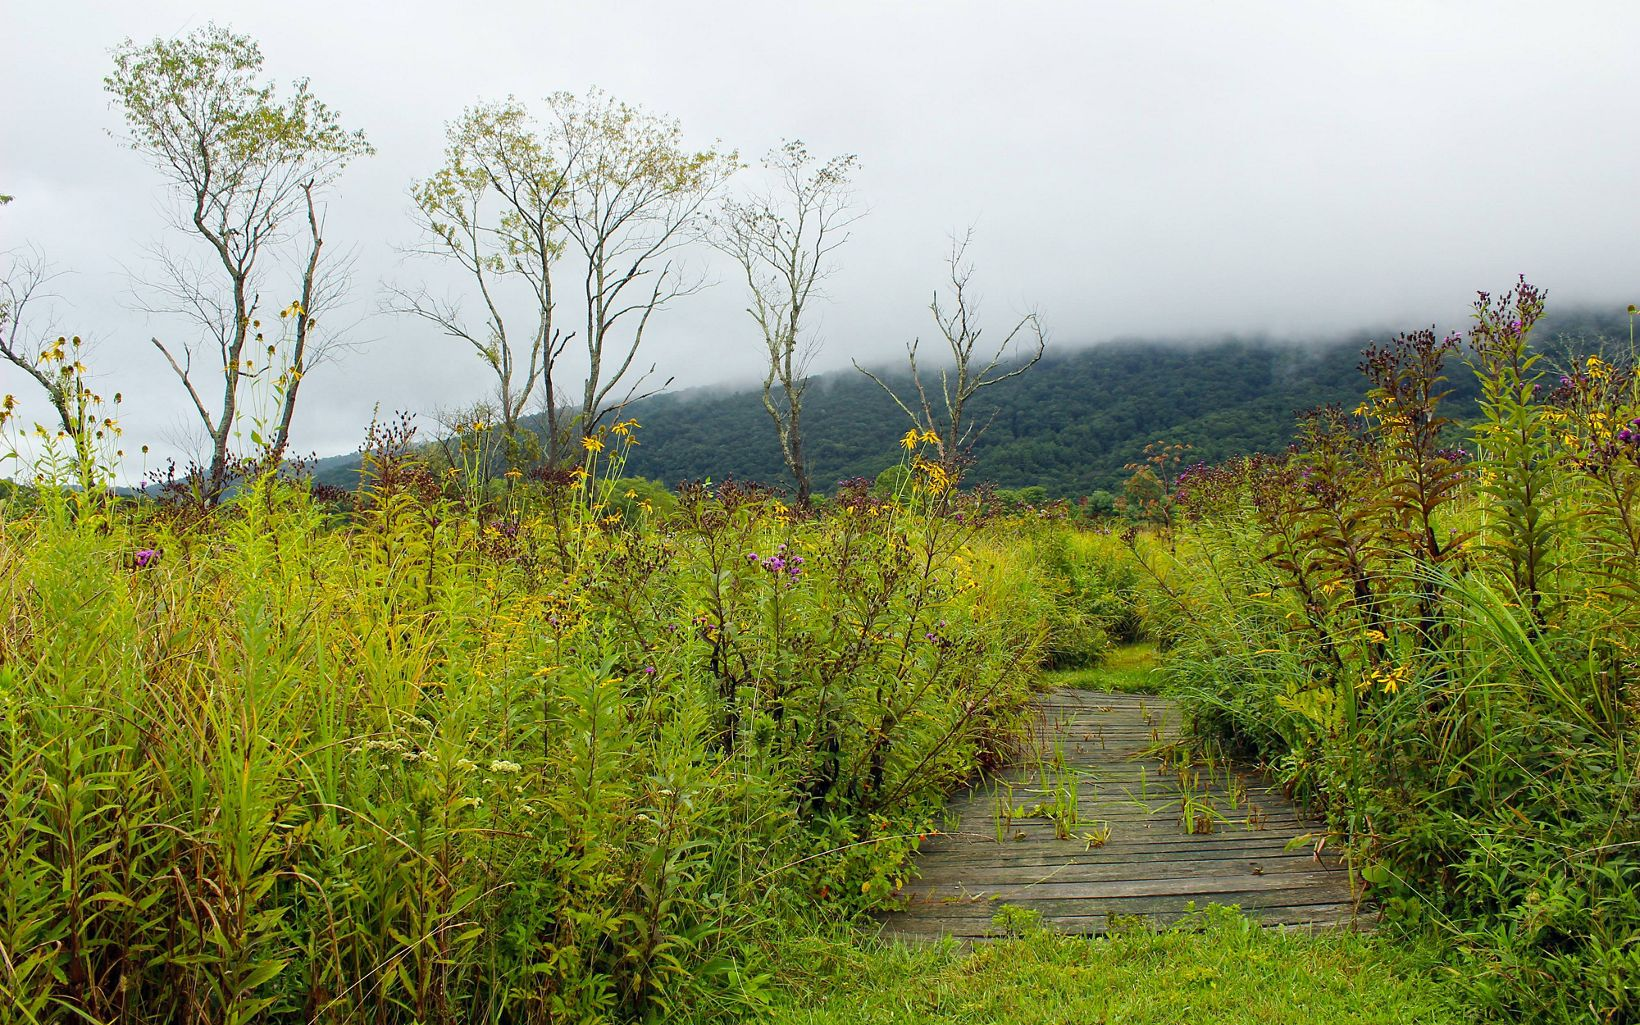 A wooden boardwalk leads a path between tall blooming plants. Heavy white clouds hang low over the mountain ridge in the background.